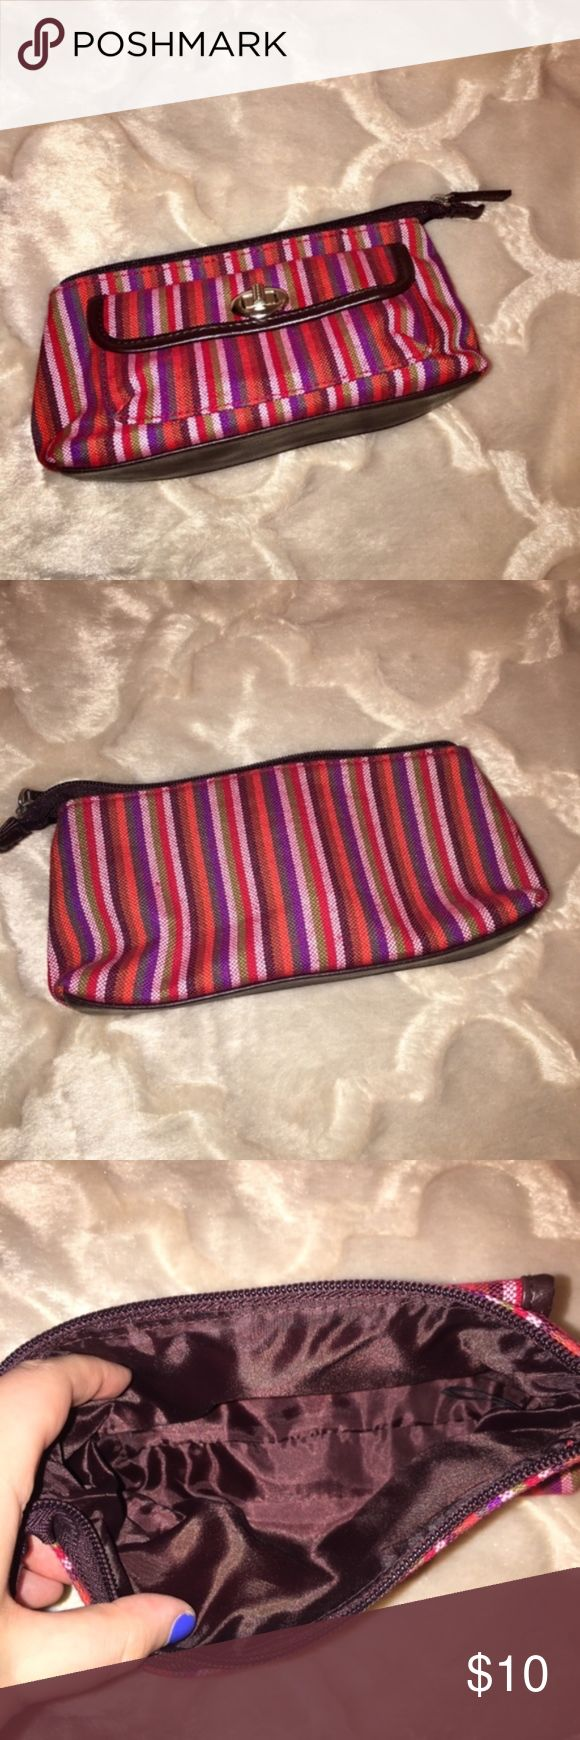 Striped Estee Lauder Makeup Bag Red, pink and purple striped Estee Lauder makeup bag. Inside is brown. Zips and has a compartment on the outside that locks and you have to twist open.  Free gift included with purchase. Estee Lauder Bags Cosmetic Bags & Cases